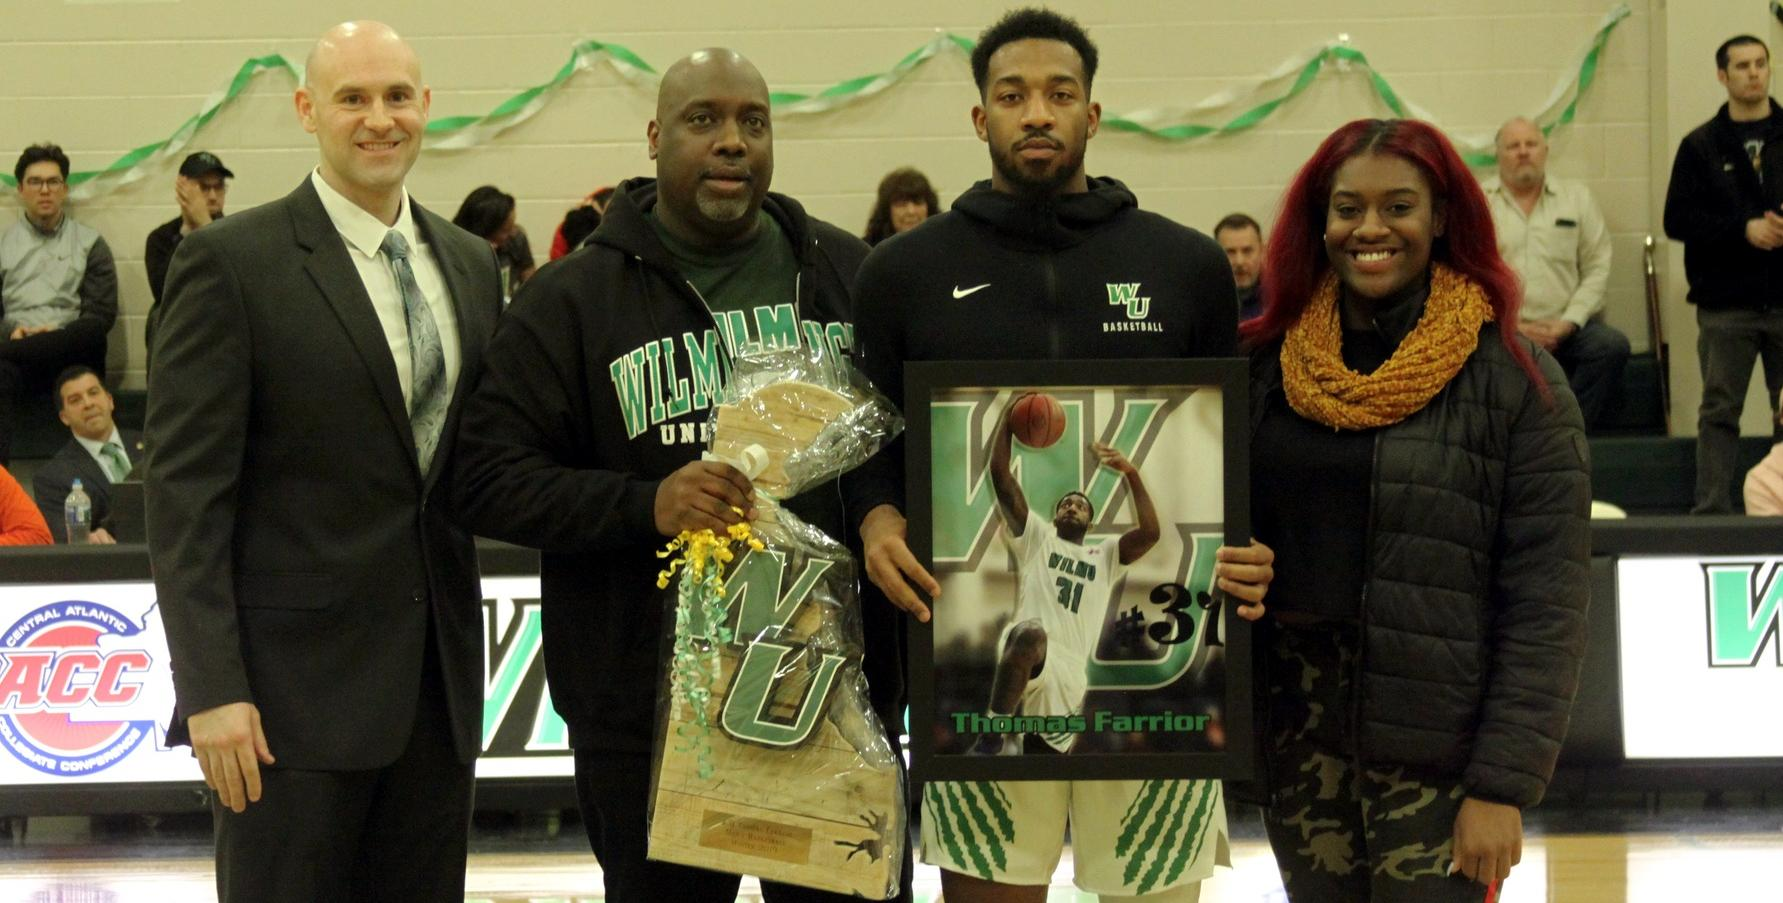 Copyright 2019; Wilmington University. All rights reserved. Photo of Thomas Farrior on Senior Night. Photo by Samantha Kelley. February 27, 2019 vs. Holy Family.